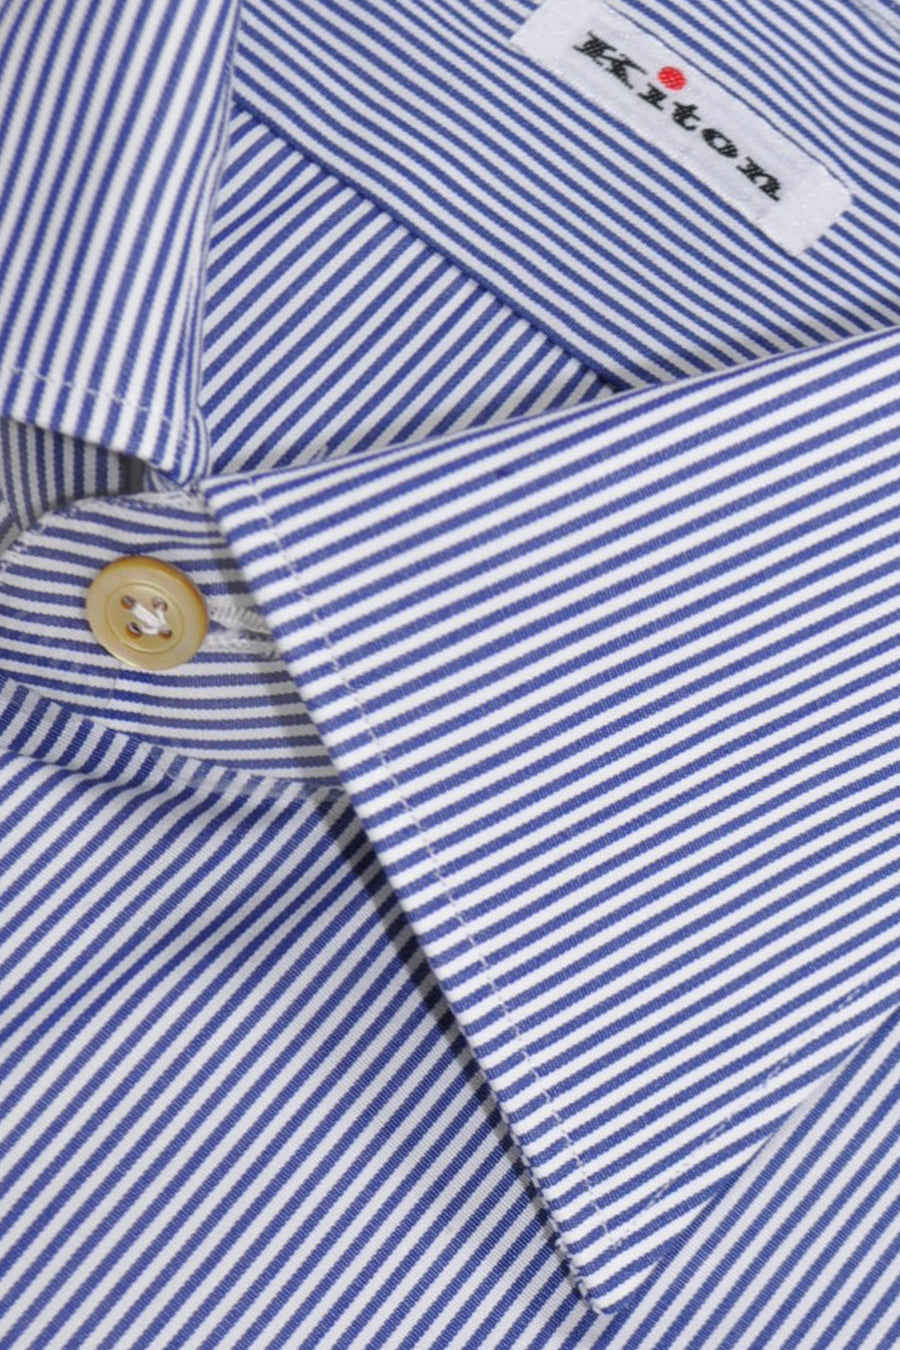 Kiton Dress Shirt White Navy